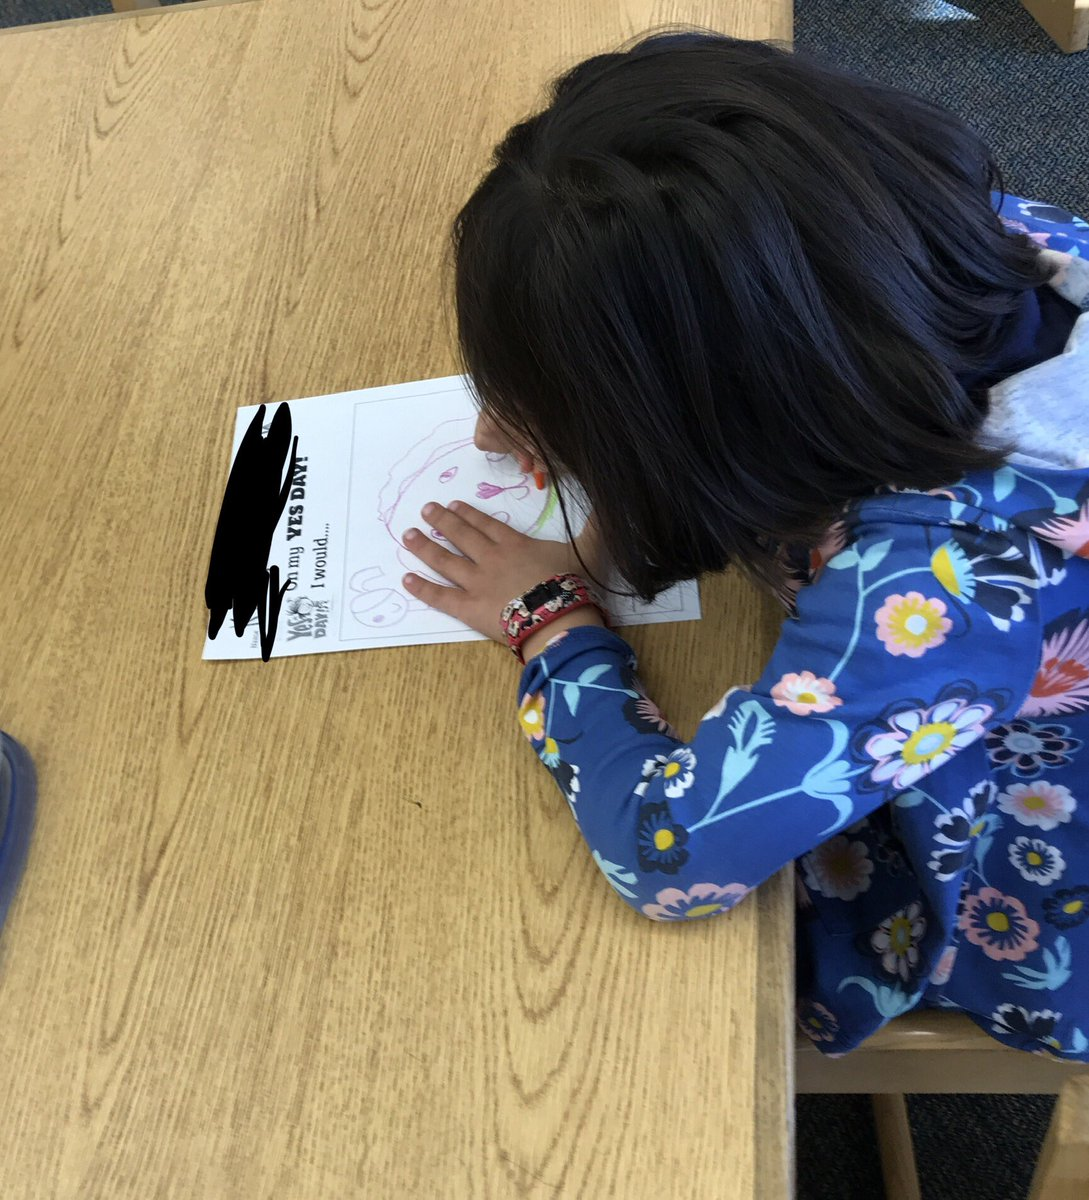 Read Yes Day! with Kinders today as the start of an author study of <a target='_blank' href='http://twitter.com/missamykr'>@missamykr</a>. Students drew pictures and wrote about their own Yes Day! wishes. Can't wait to continue exploring her work with them. <a target='_blank' href='http://twitter.com/APSLibrarians'>@APSLibrarians</a> <a target='_blank' href='https://t.co/0wDI511q4X'>https://t.co/0wDI511q4X</a>